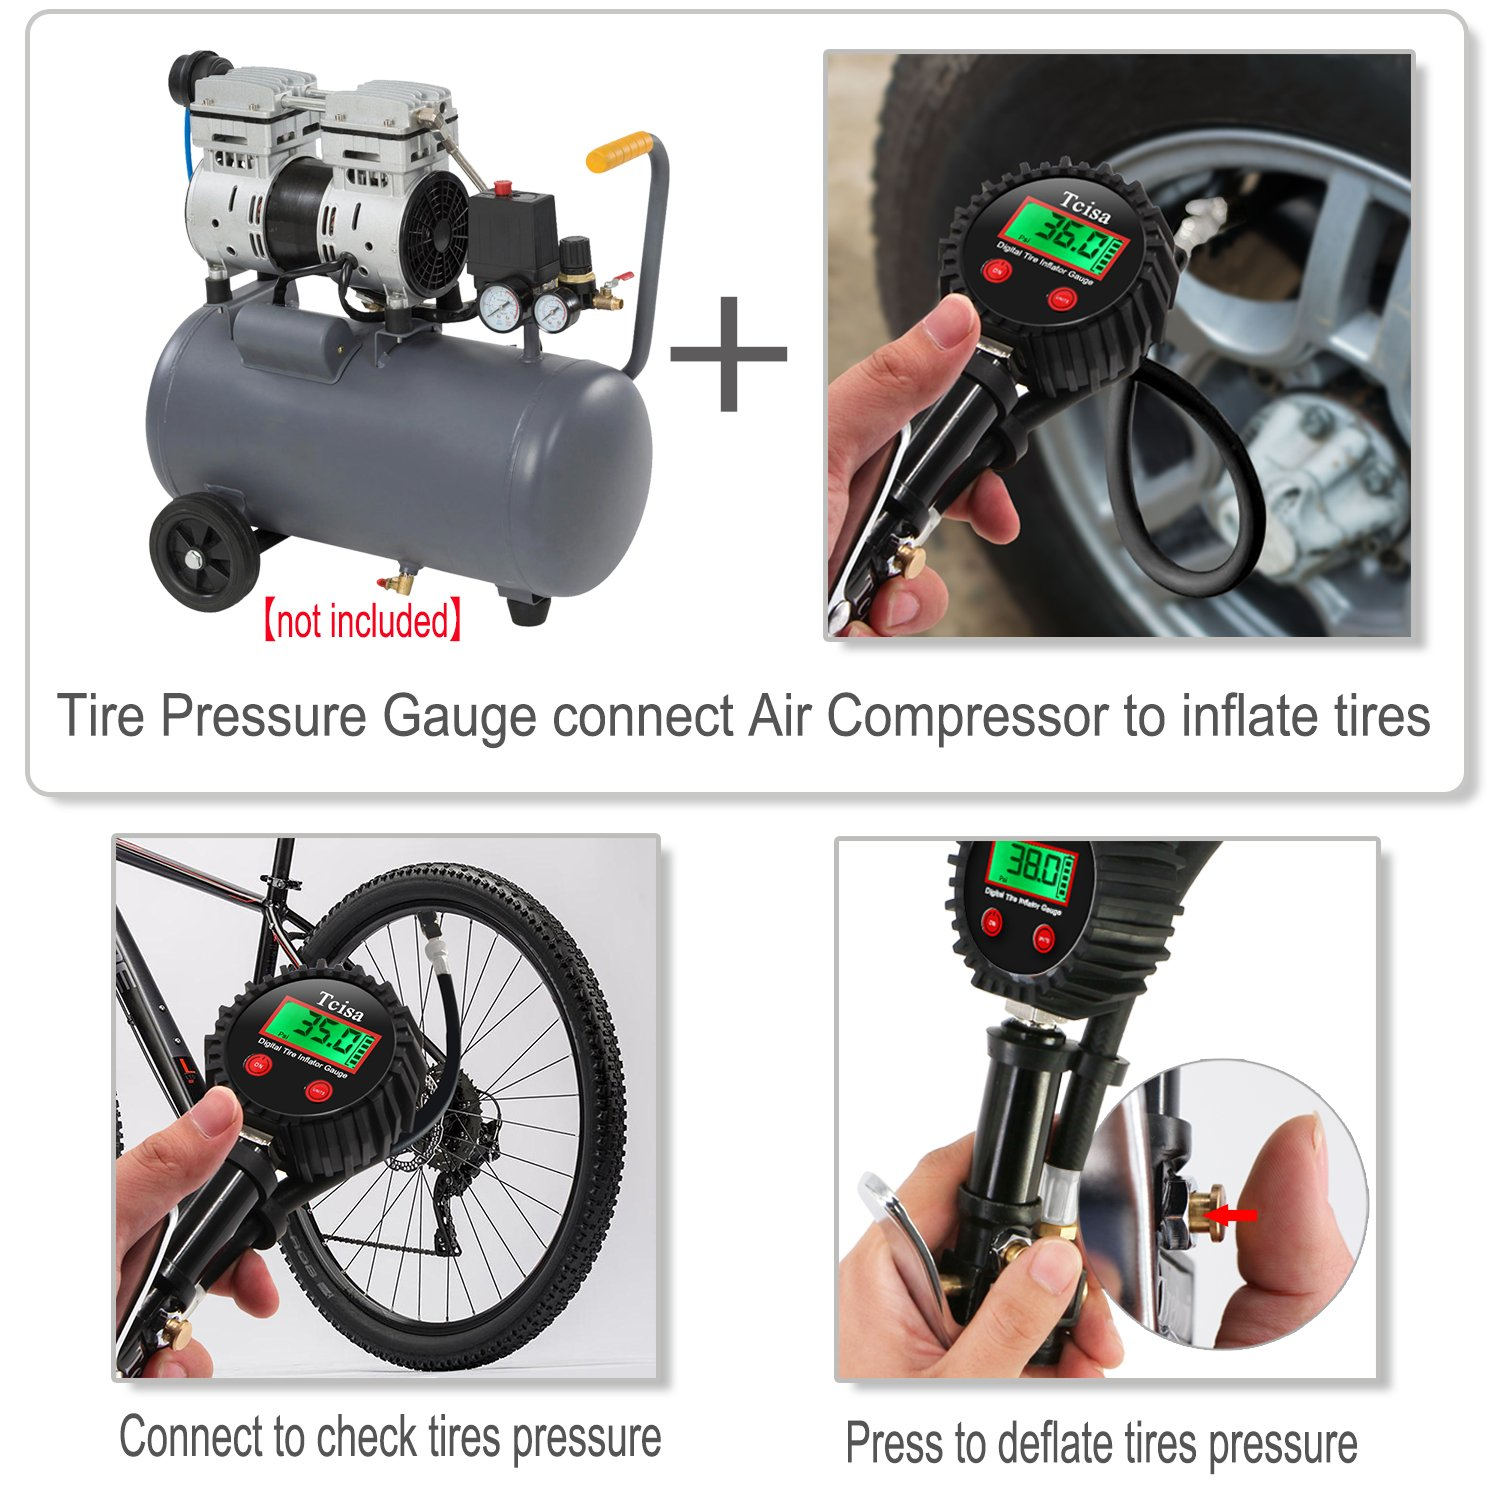 Tcisa Tire Inflator with Pressure Gauge - Digital Heavy Duty 200 PSI Air Pressure Gauge with Leakproof Air Chuck Valve Extender Rubber Air Hose Quick-Connect Fitting by Tcisa (Image #6)